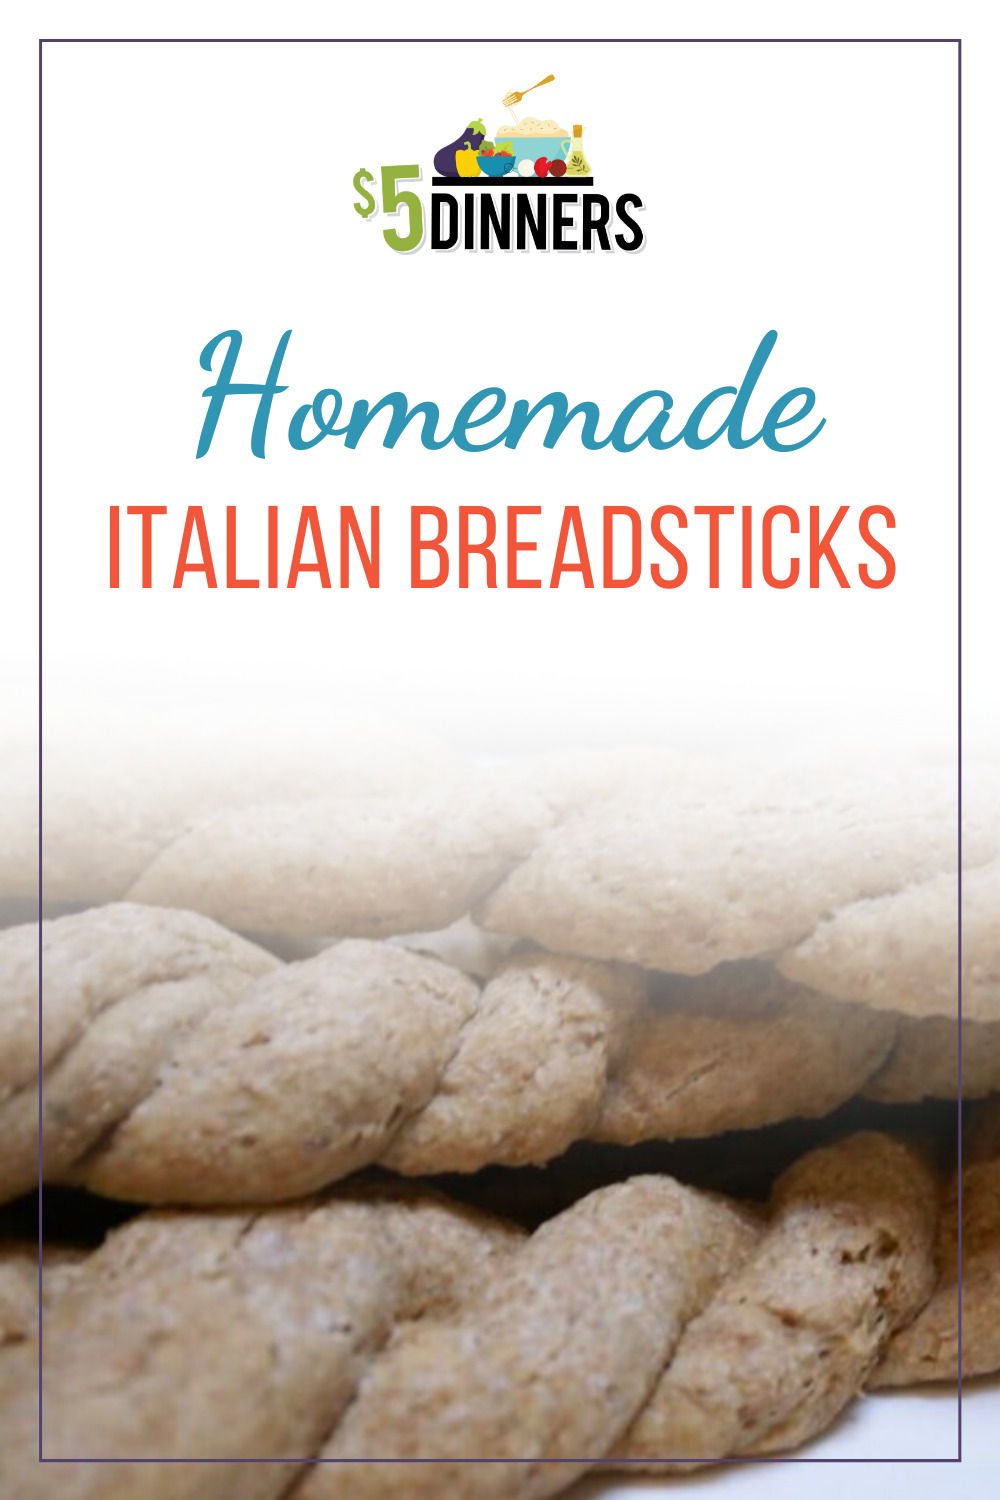 Homemade Italian Breadsticks 5 Dinners Recipes Meal Plans